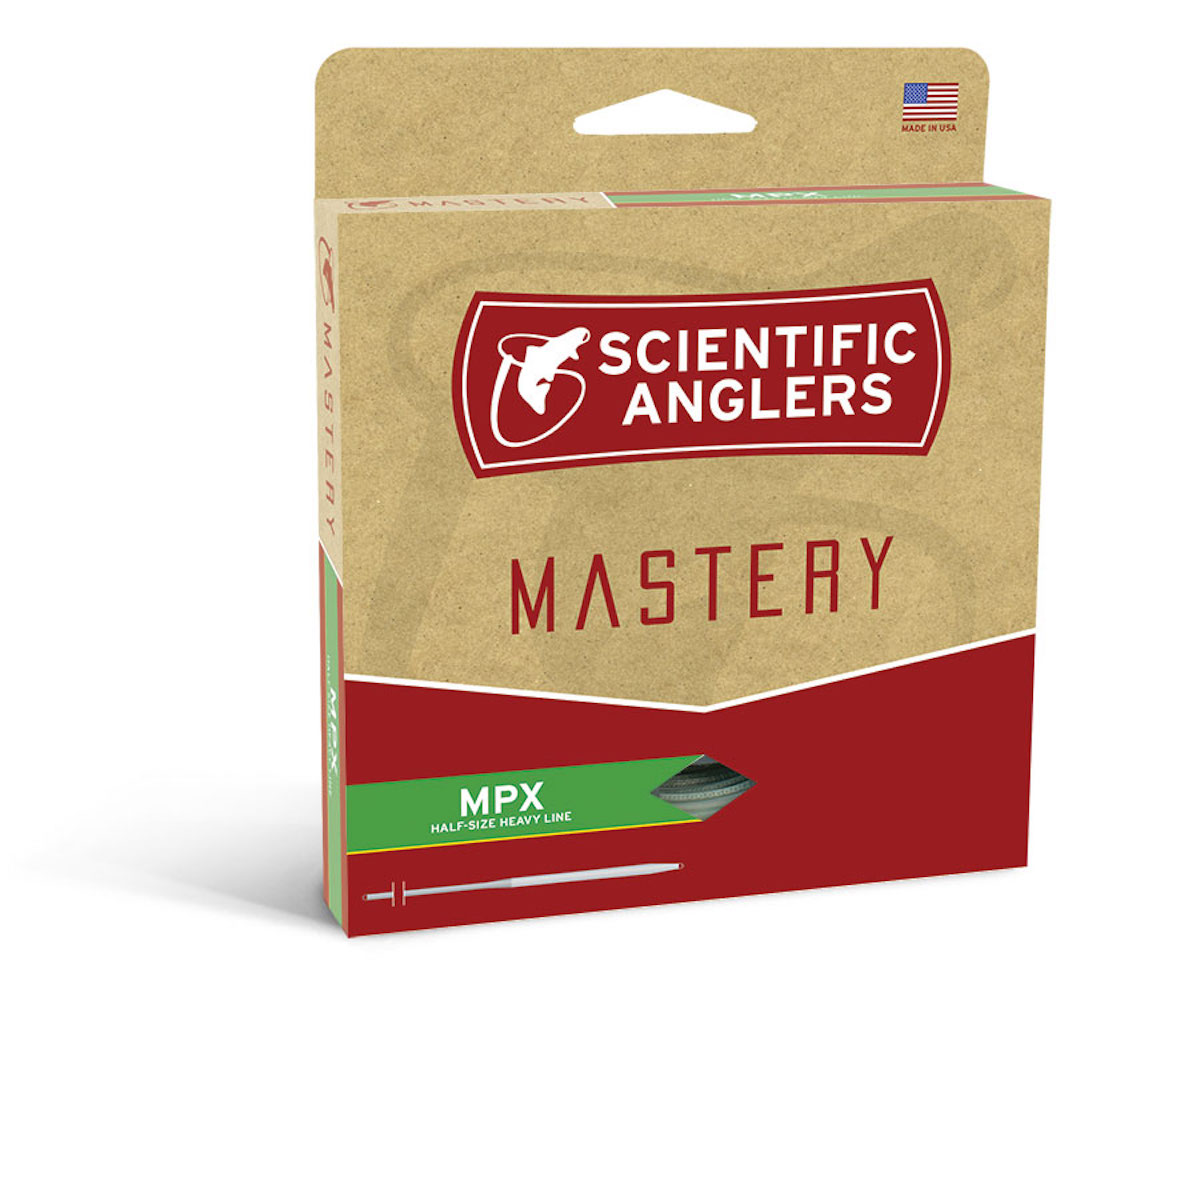 Scientific Anglers Mastery MPX Stealth Fly Line